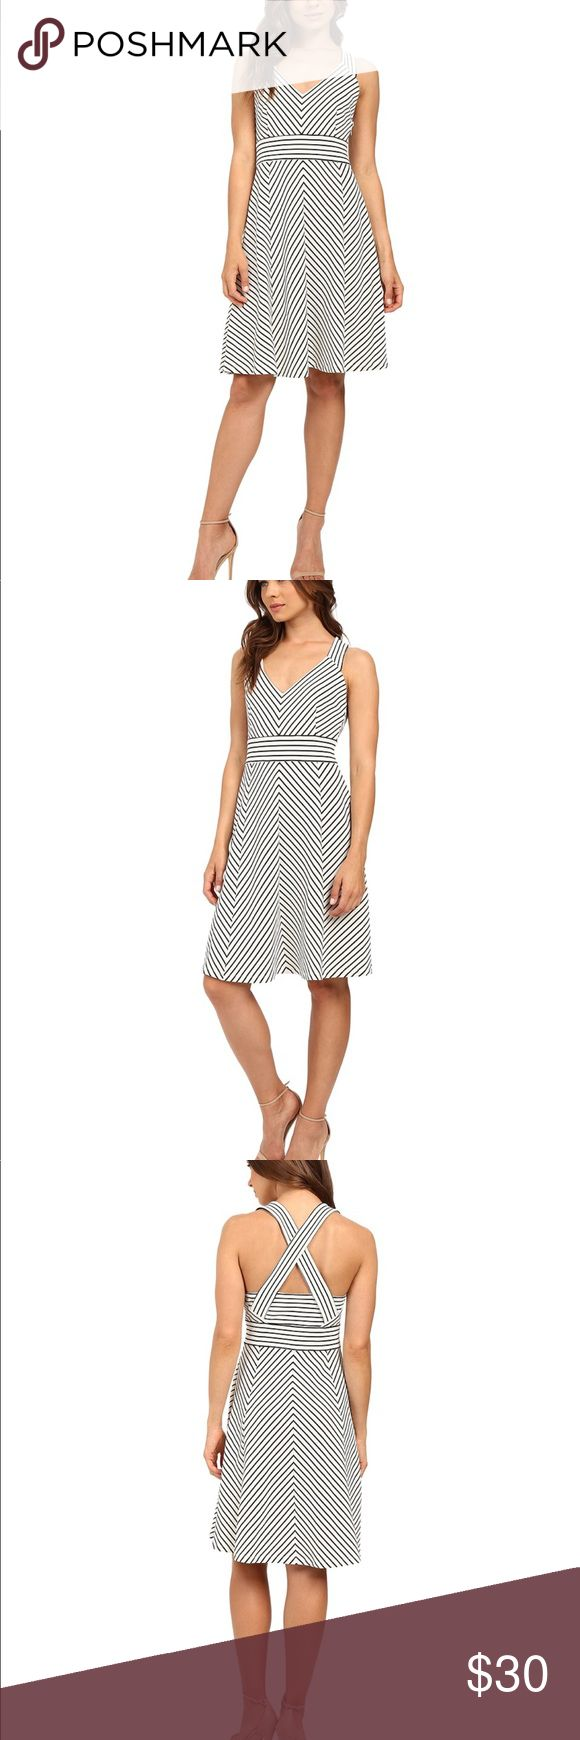 Adrianna Papell Striped Ottoman Knit Dress A stunning striped look perfect for summer in the in the city! Sleeveless fit-and-flare dress crafted in an elegant ottoman stretch knit. Strategic seaming creates an allover chevron-stripe pattern. Darting highlights the slim cut at bodice. Halter V-neckline features a cross-back design for an alluring finish. Defined waistline sports a contrast stripe design. Straight hemline hits at a modest length. Side zipper closure. Adrianna Papell Dresses